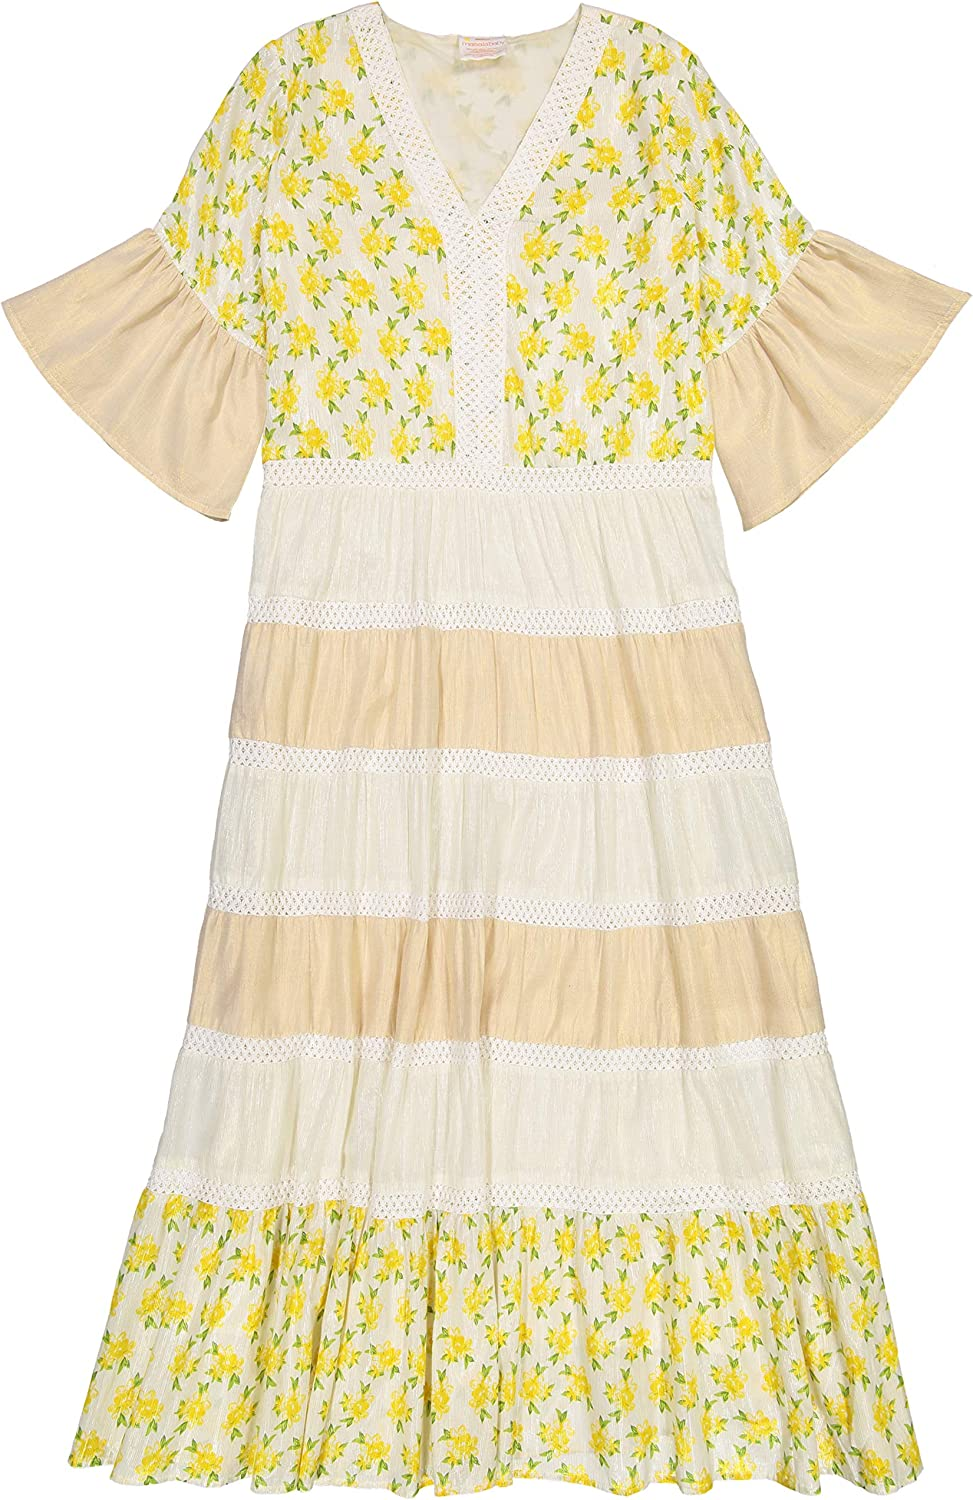 Masala Baby Womens Mara Dress Lemon Blossom Yellow Casual Dress